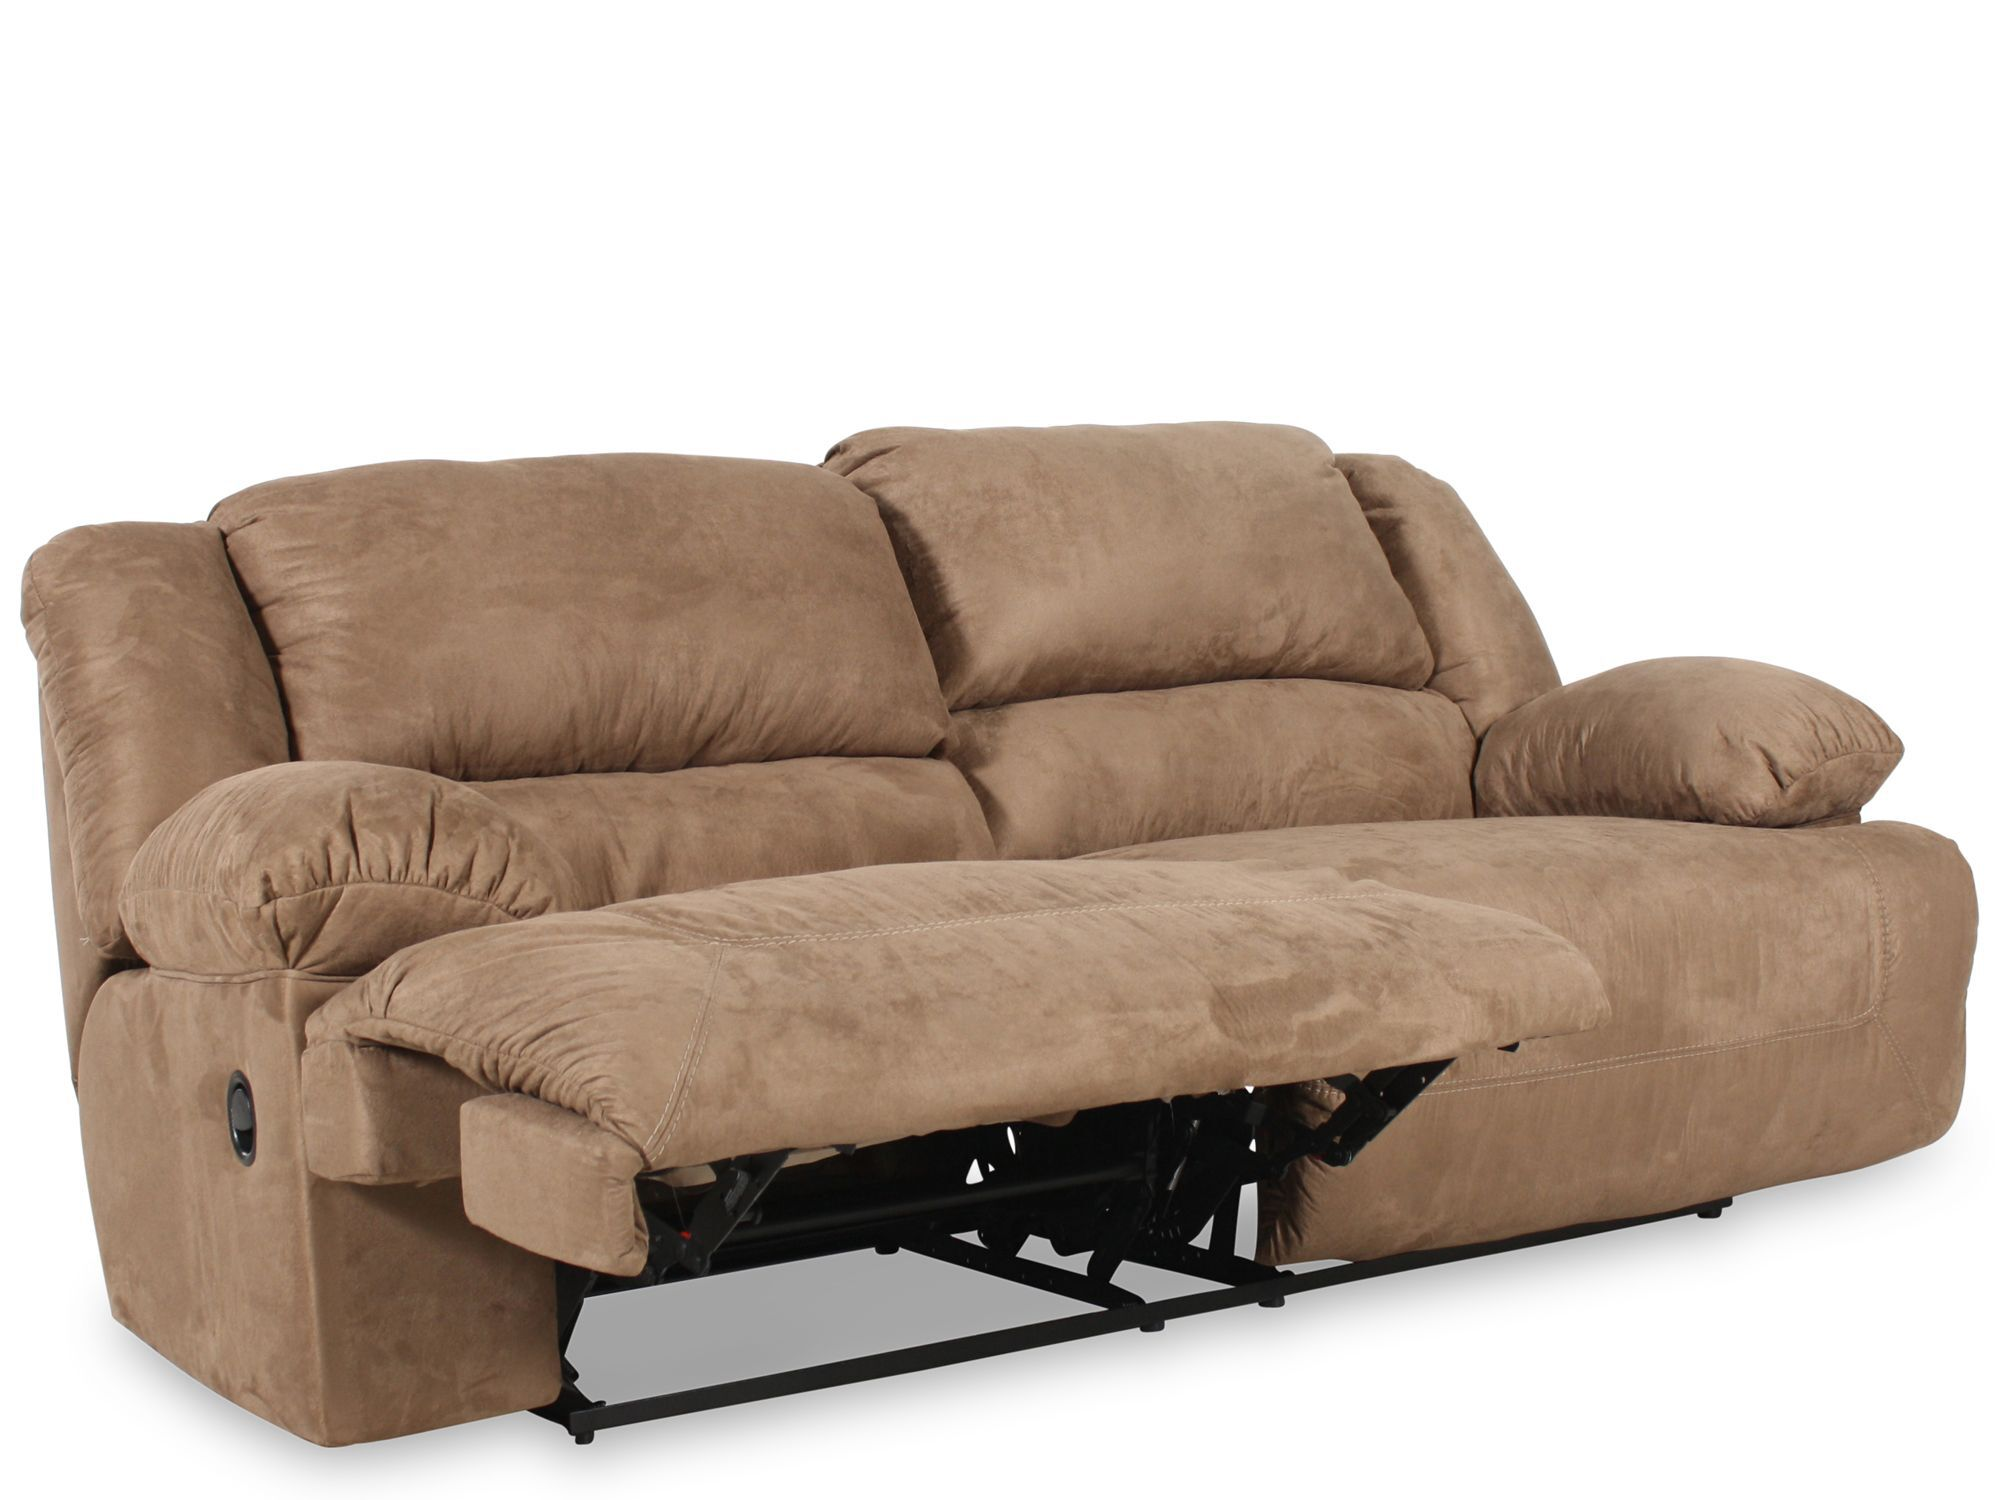 Ashley Hogan Mocha Two-Seat Reclining Sofa  sc 1 st  Mathis Brothers : two seat recliner - islam-shia.org